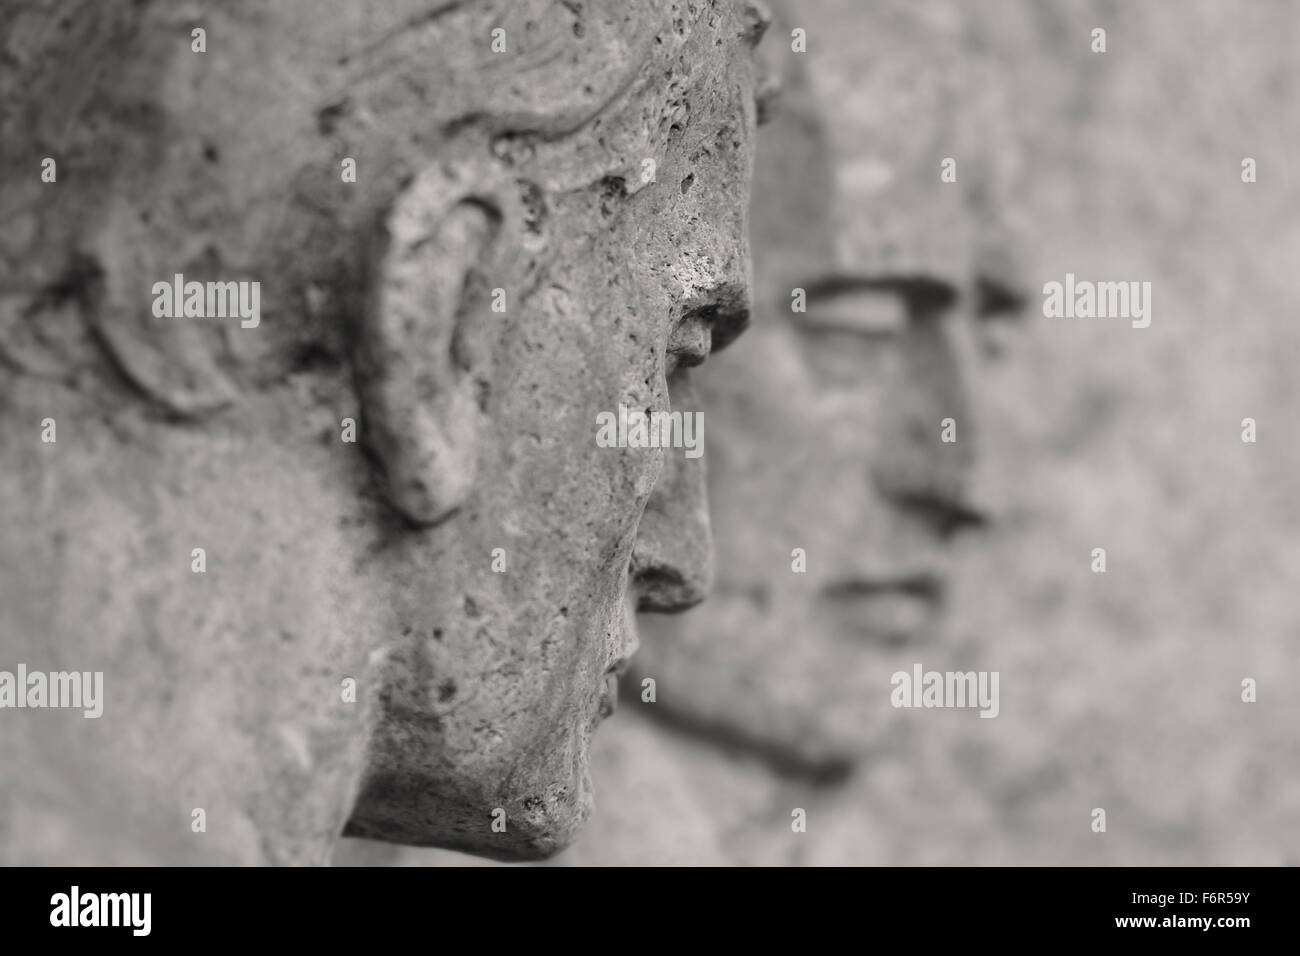 Remembering the Fallen - Graveyard Tomb Sculpture - Stock Image